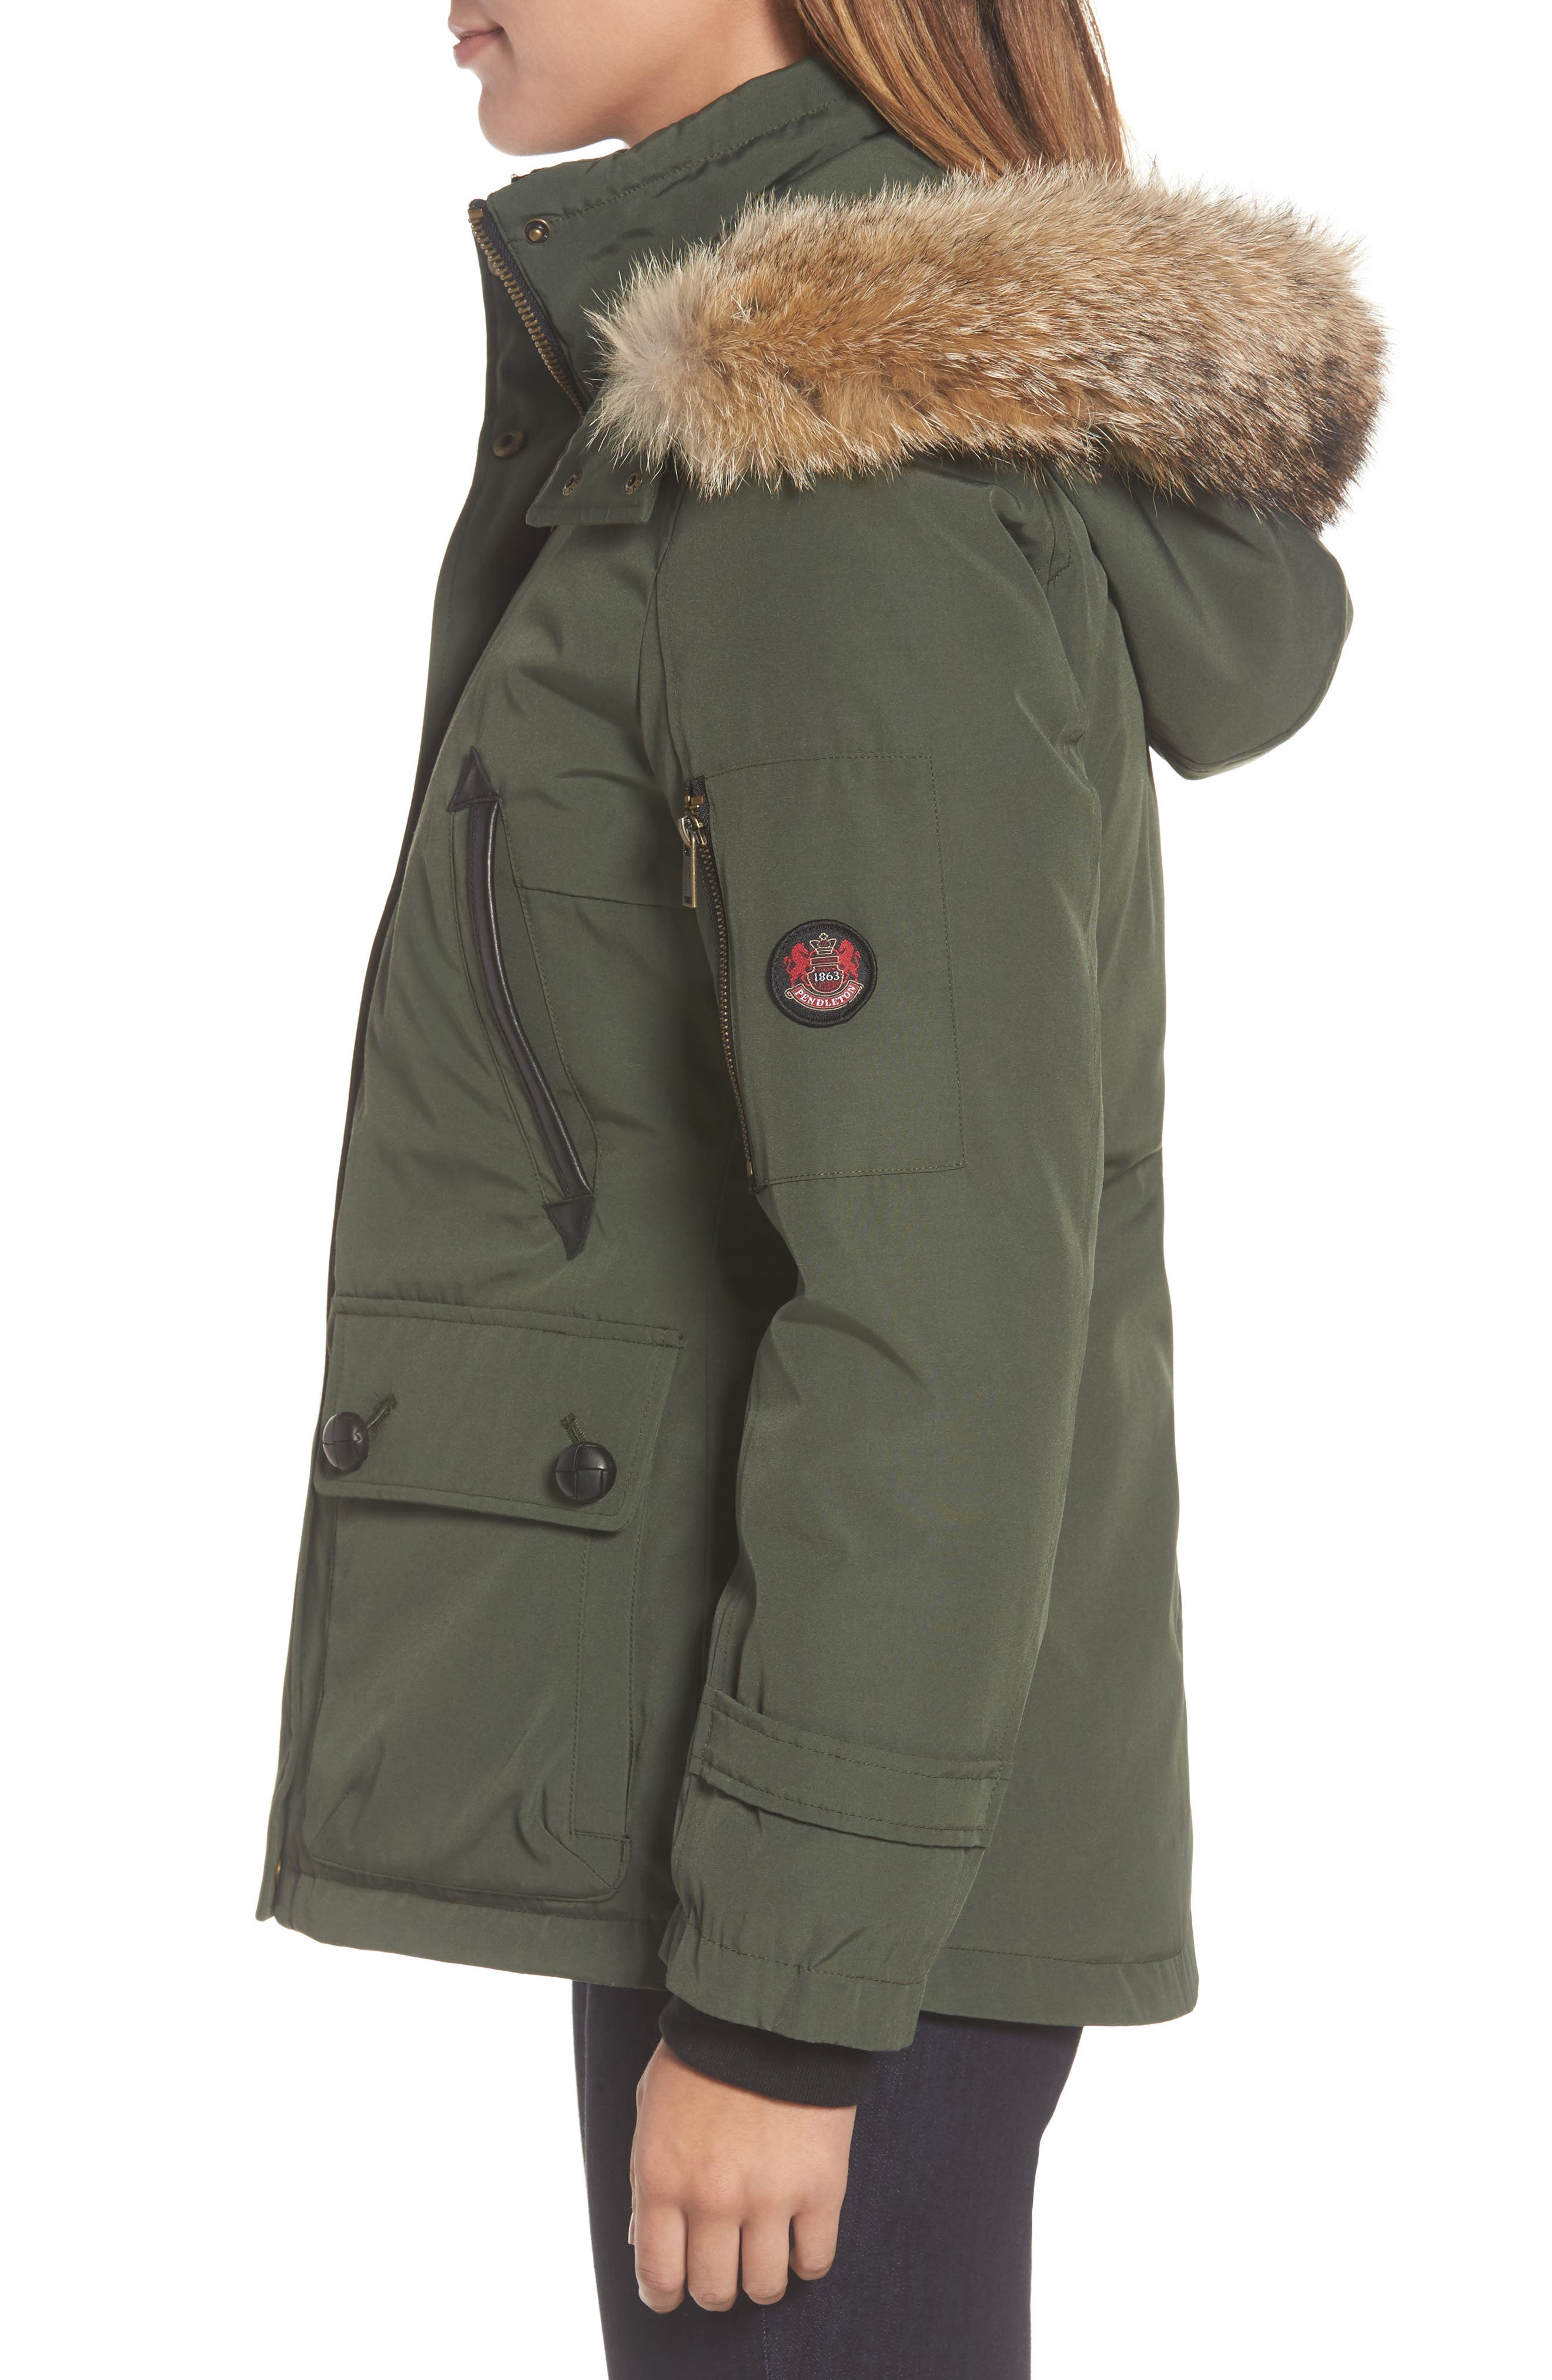 Bachelor Water Repellent Hooded Down Parka with Genuine Coyote Fur Trim,                             Alternate thumbnail 3, color,                             Olive